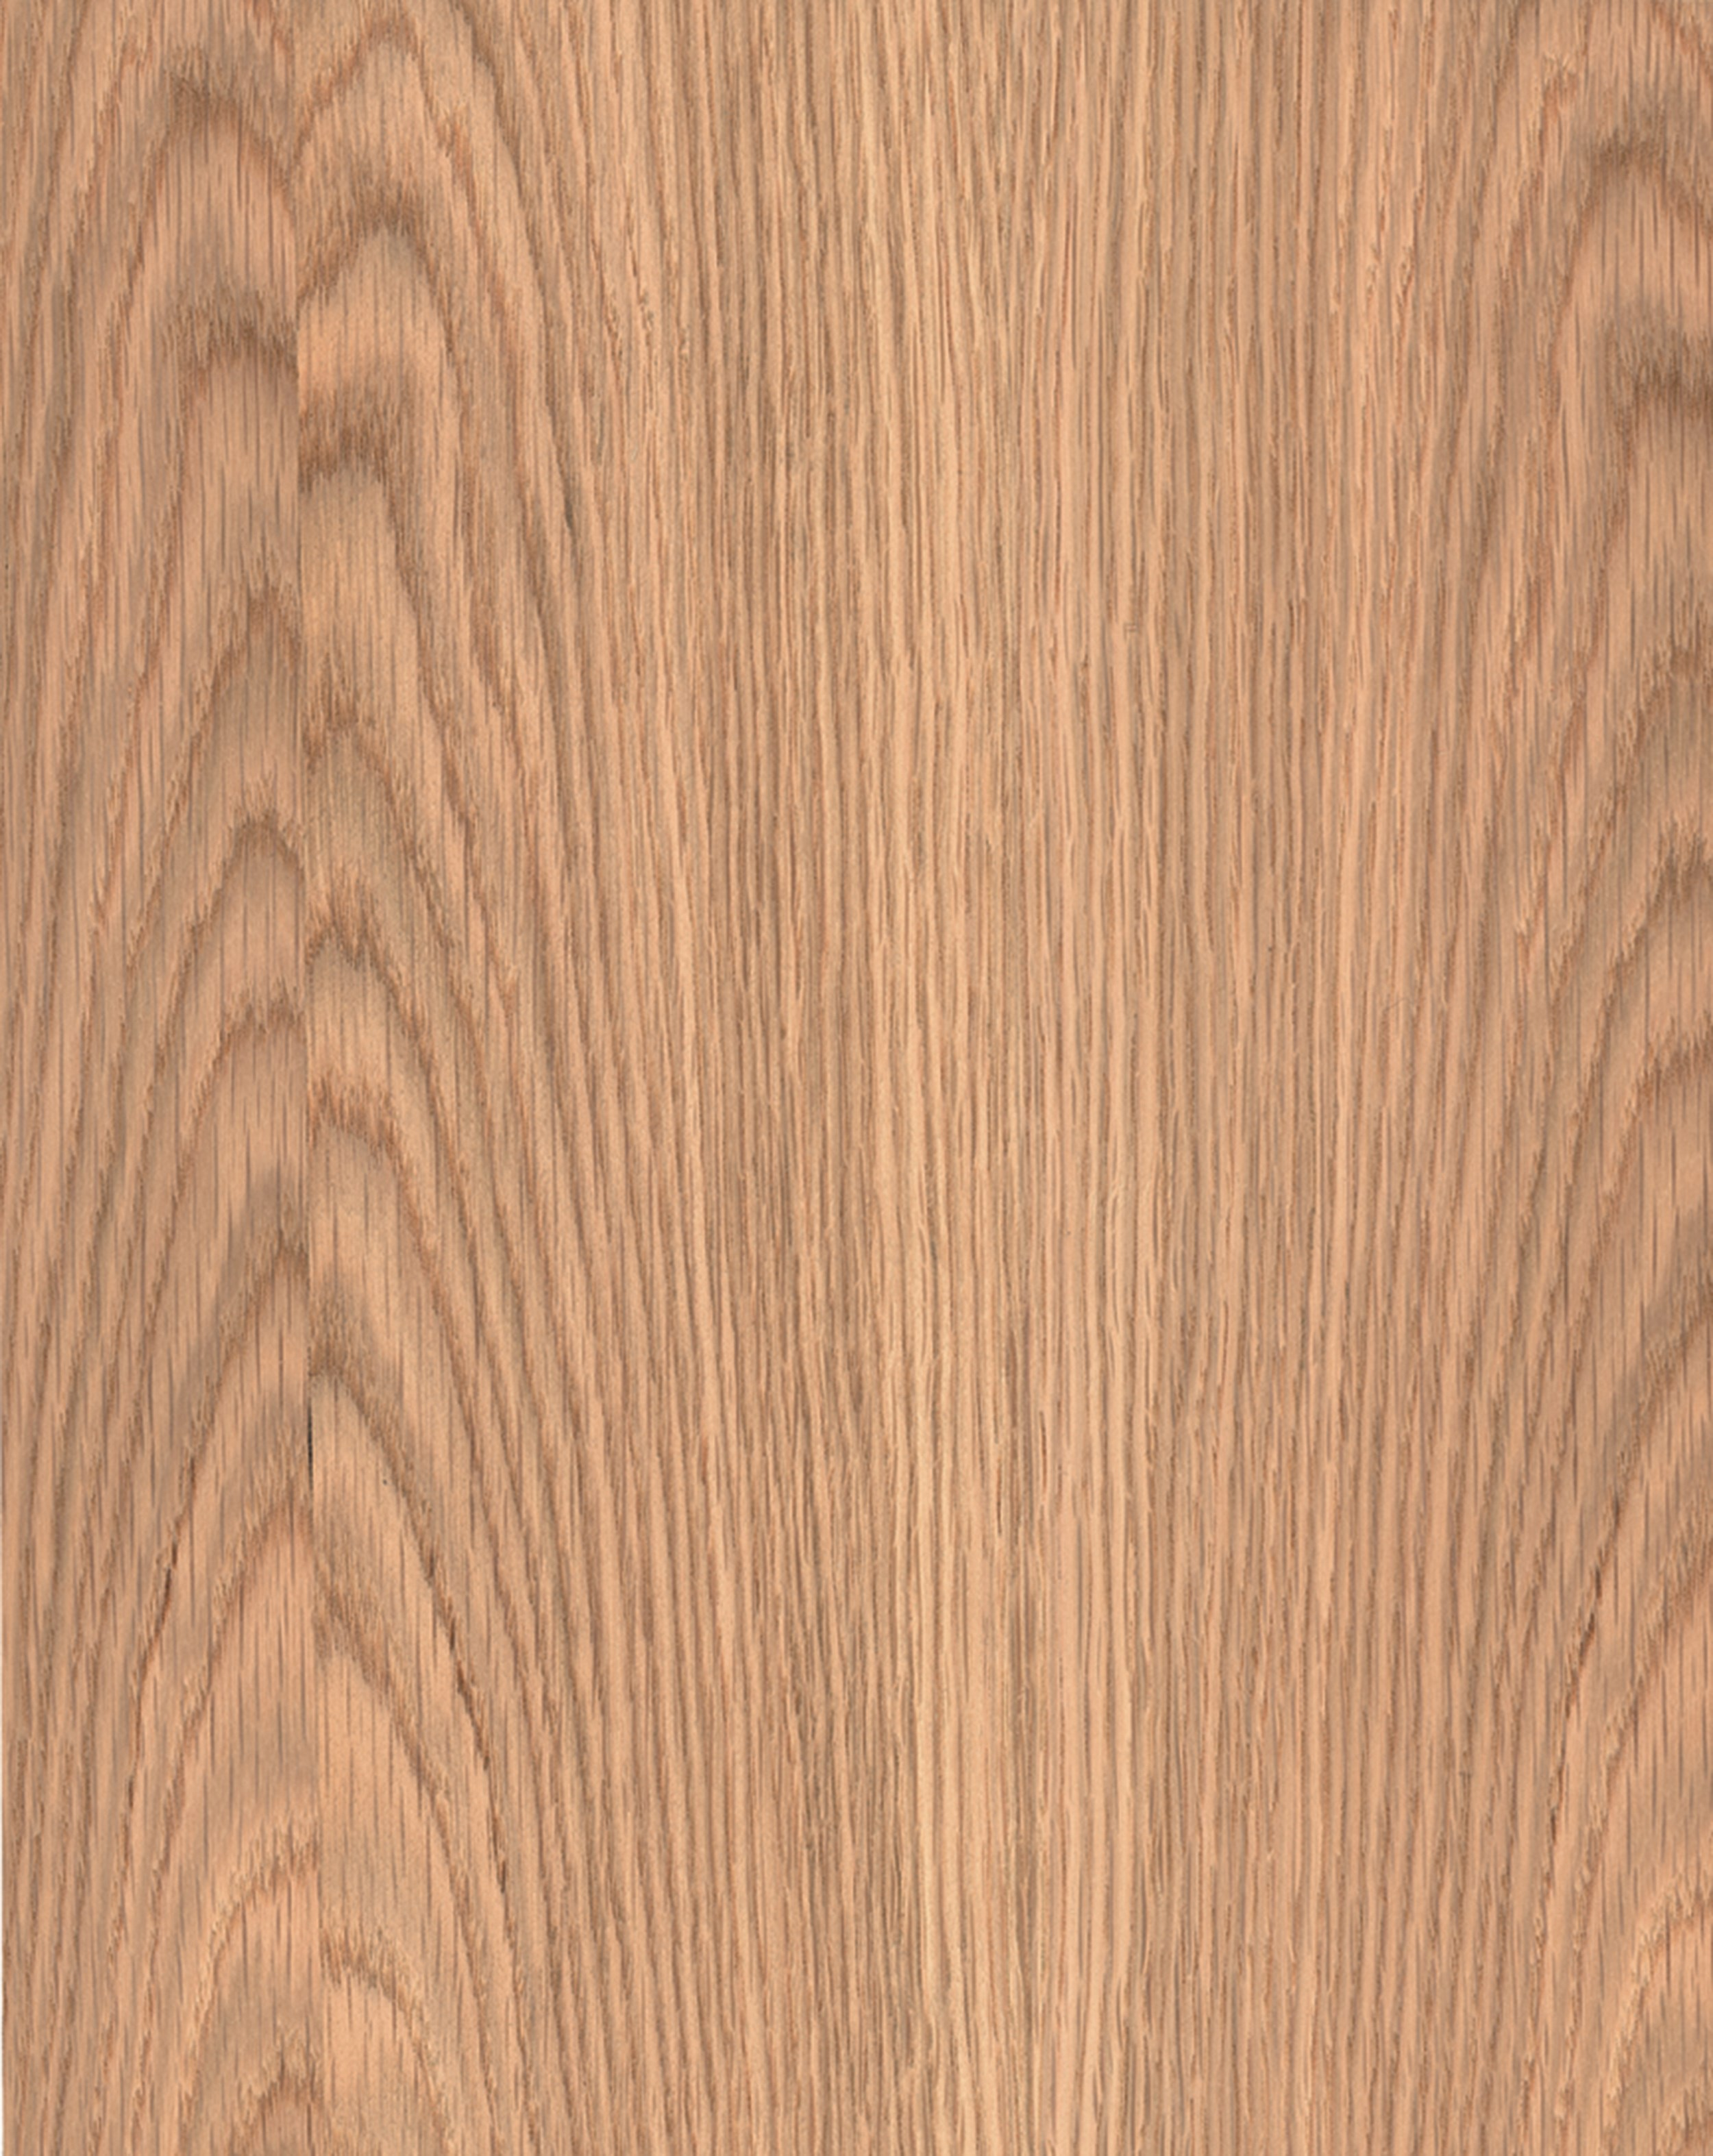 Finsa Veneered Mdf Sheet 1220 X 2440mm White Oak Mdf